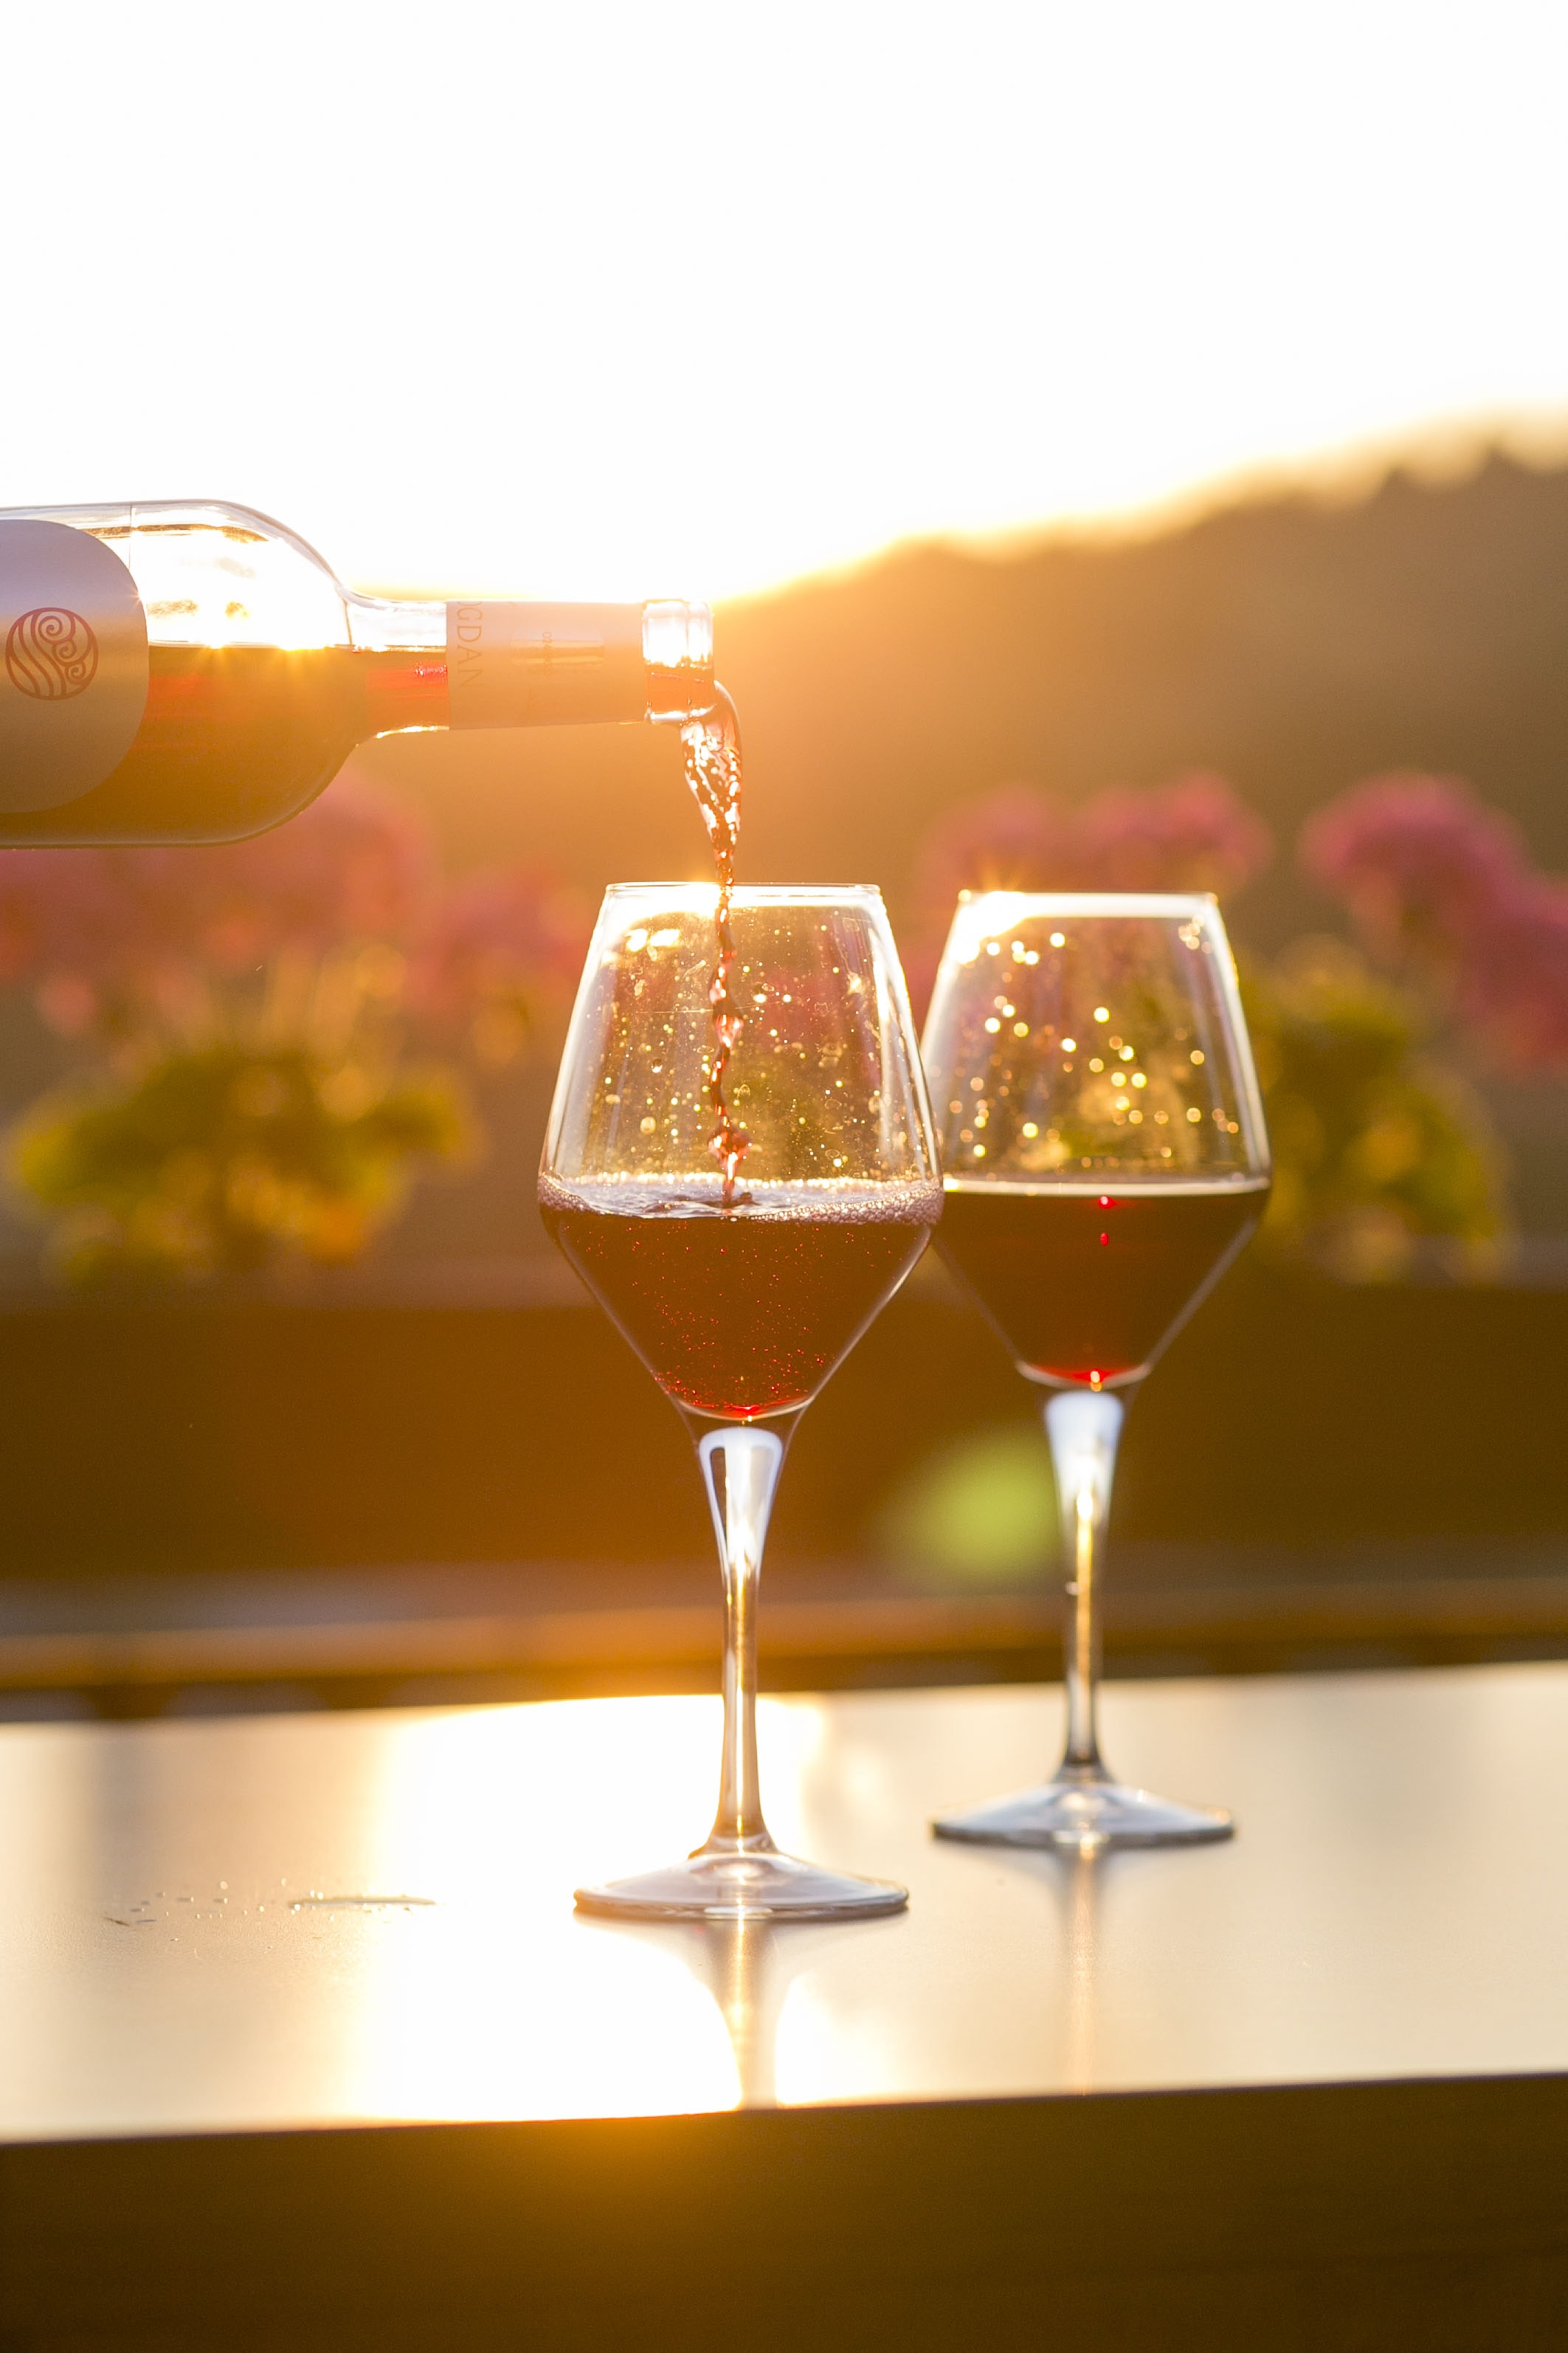 A person pouring red wine into one of two glasses with flowers and the setting sun in the background